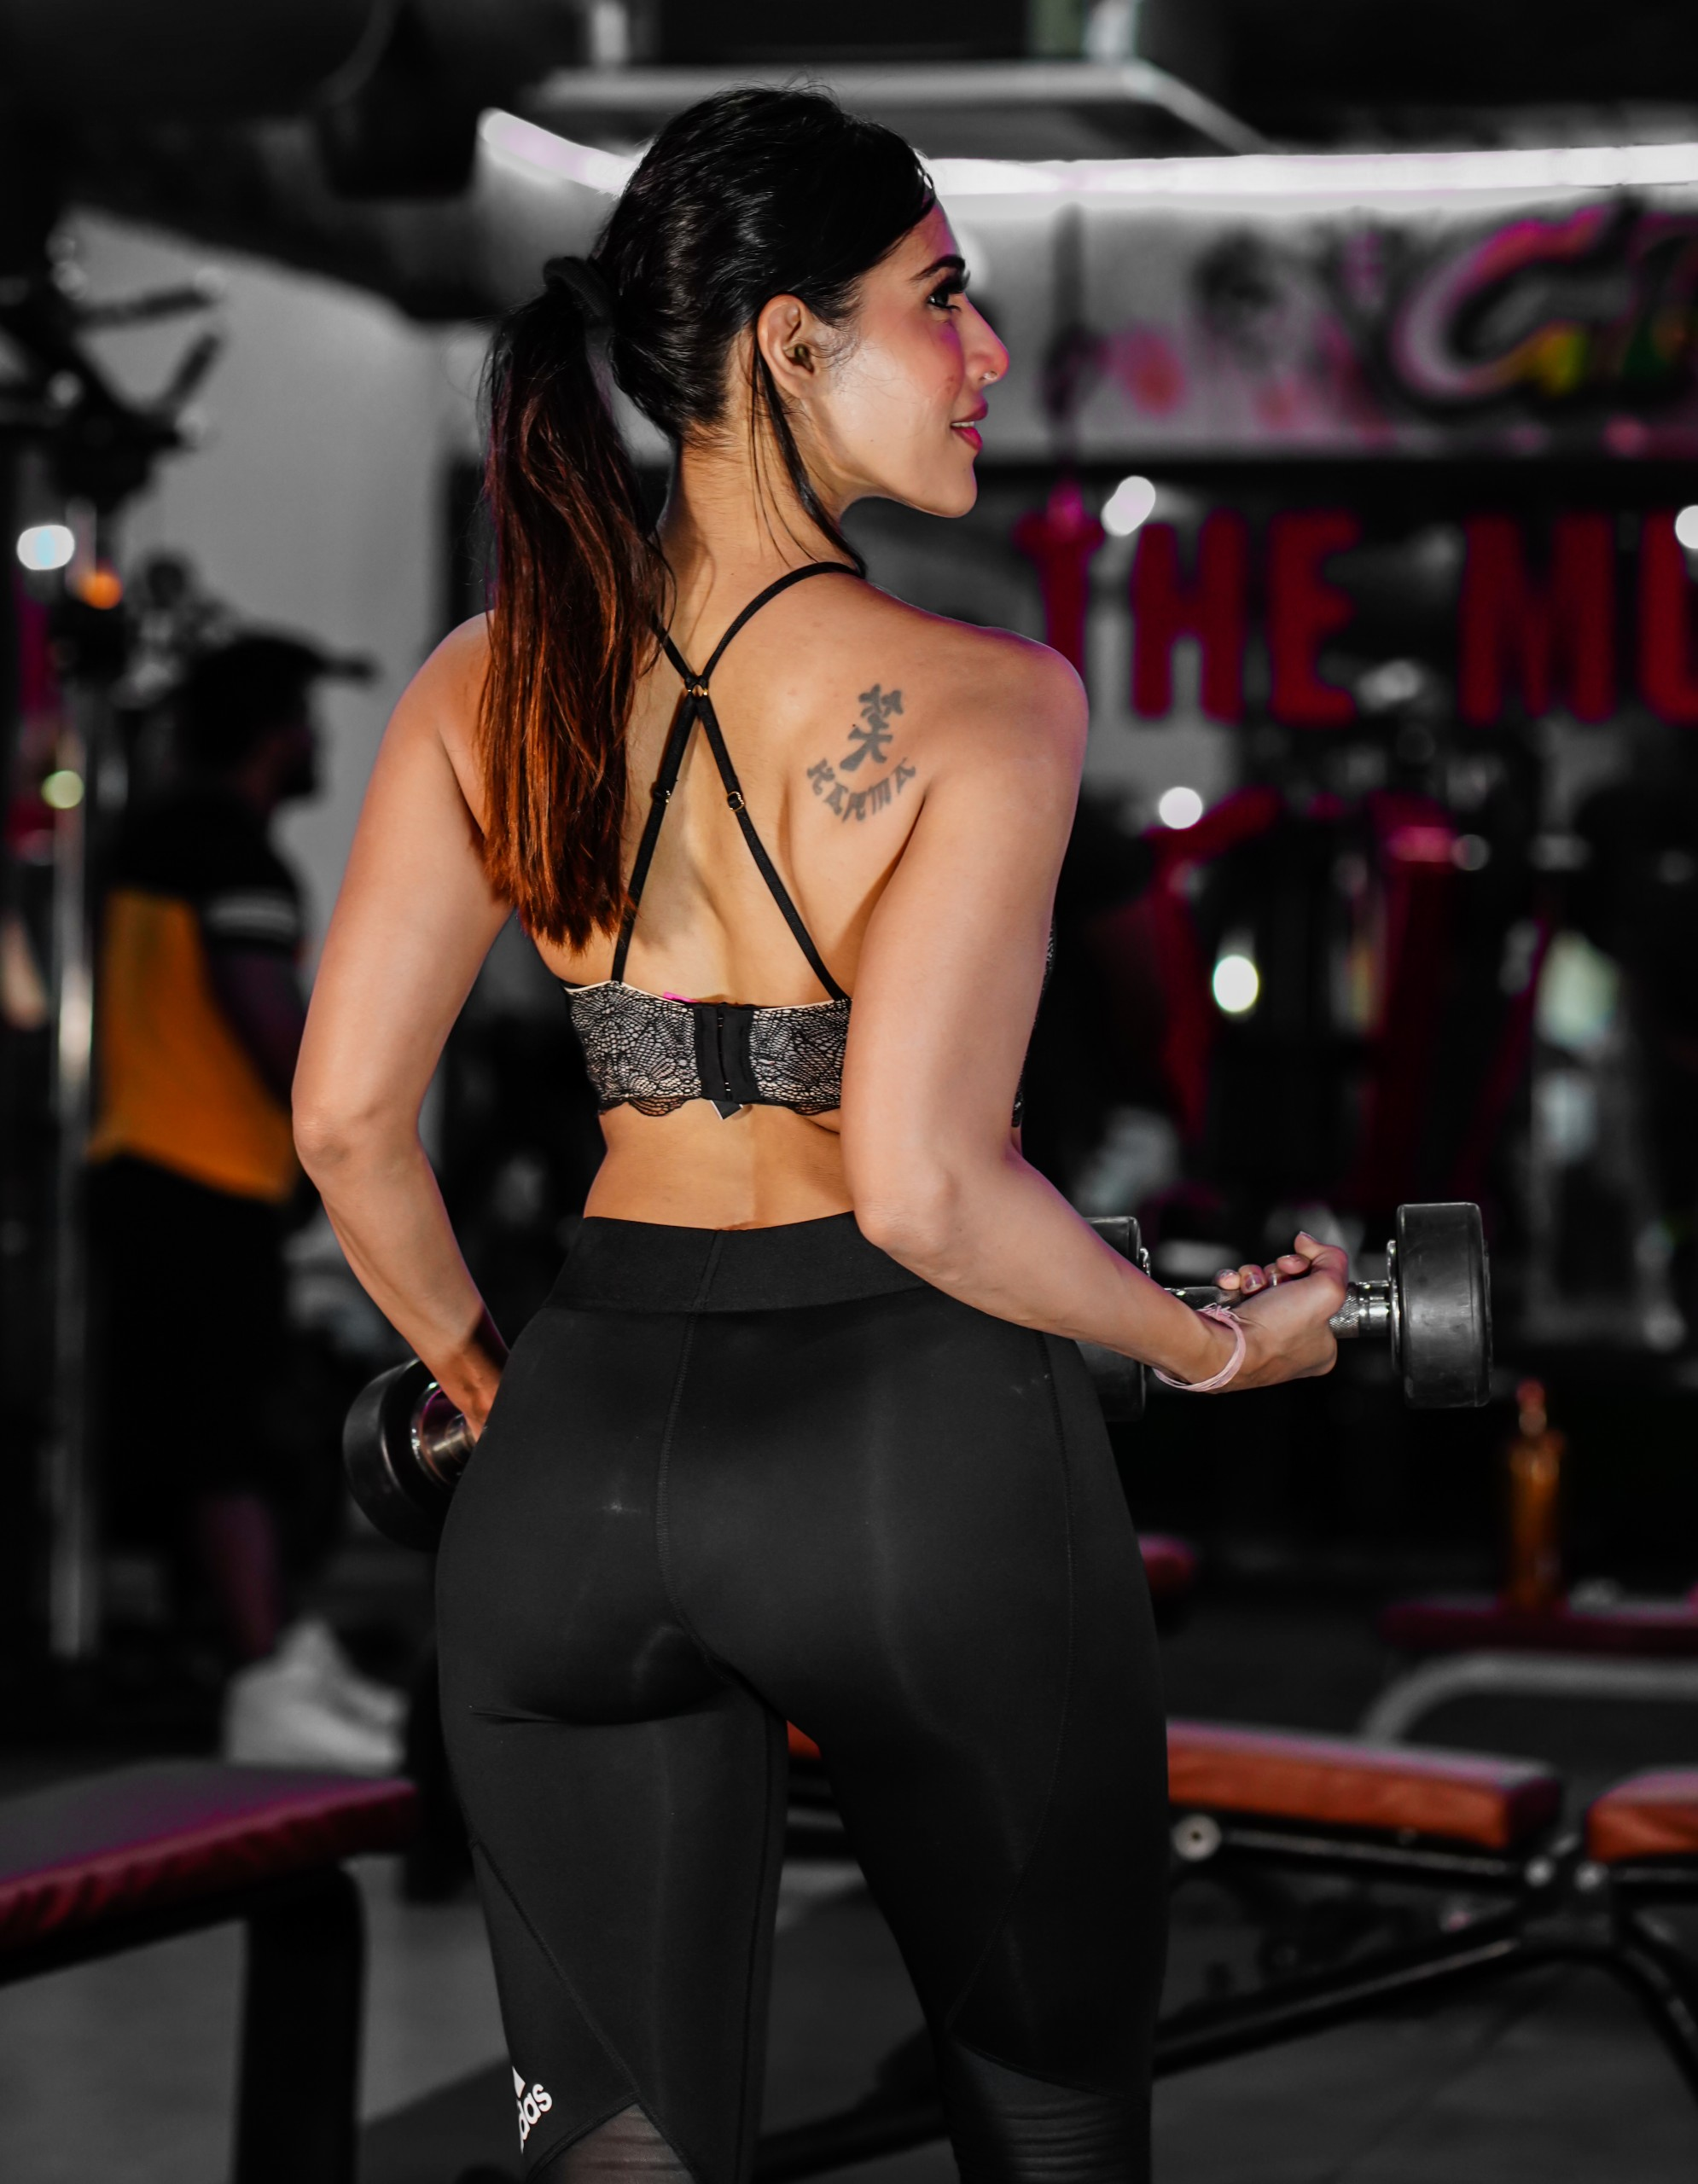 Fitness model from behind